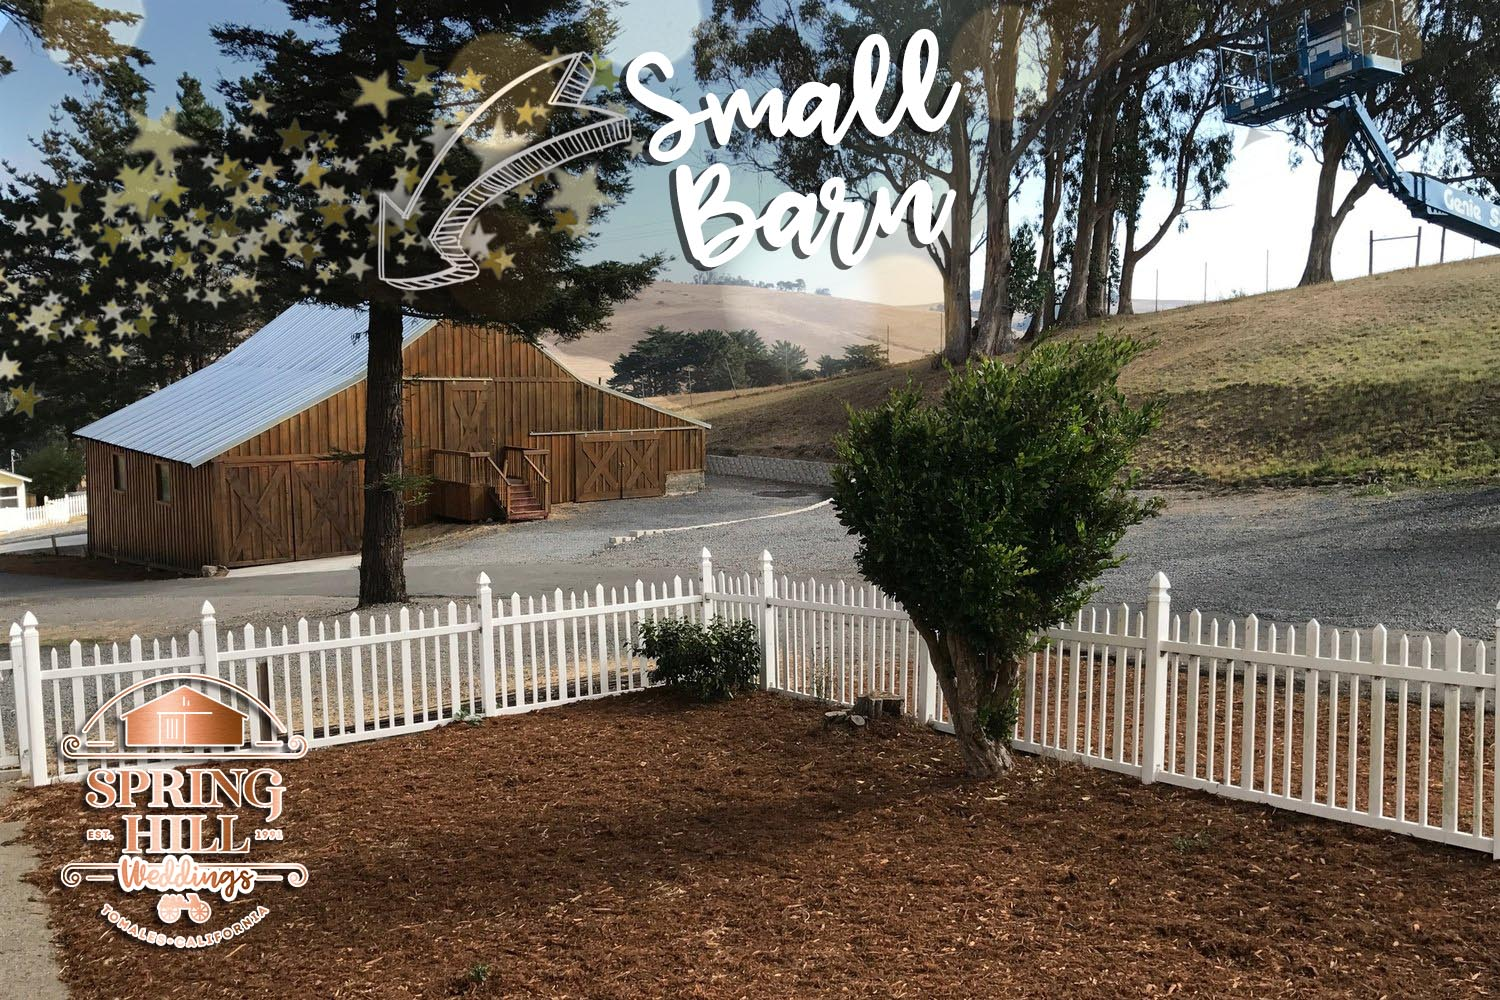 event_barn_yard_wending_propertie_rental_marin_sonoma_petaluma_tomales_bodega_bay_04952_CA_best_beautiful.jpg